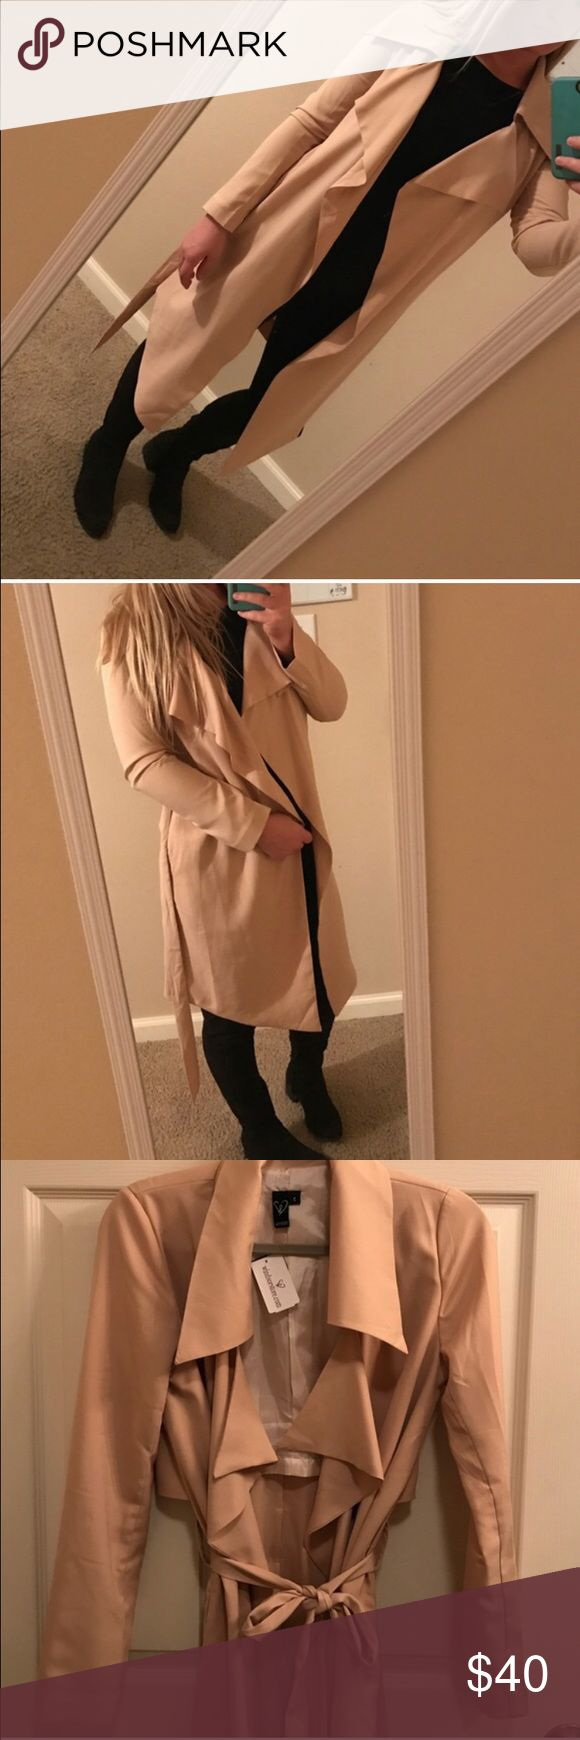 Khaki TRENCH Coat! Beautiful khaki trench coat. Size small. 100% polyester. NOT MISSGUIDED. Just using for branding. New with tags! Missguided Jackets & Coats Trench Coats